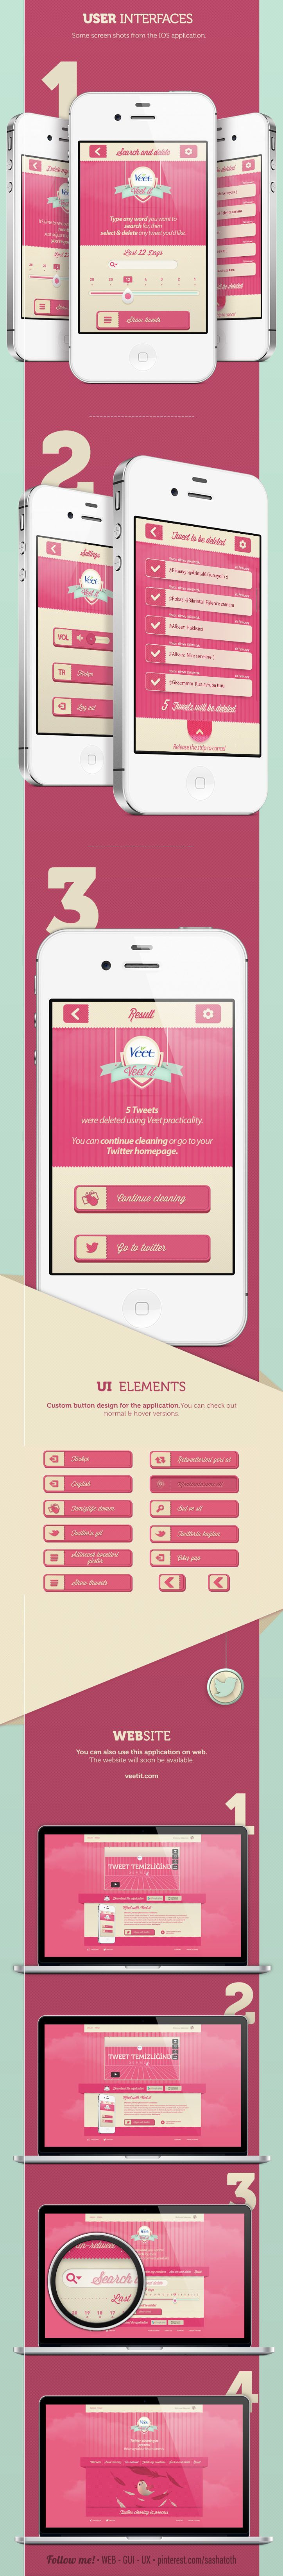 "Veet-it *** ""Veet-it is a practical application which you log in using your twitter account. Veet-it is available on IOS, Android and on Web."" by Awesome Broduction, on Behance *** #app #iphone #android #ux #ui #gui"